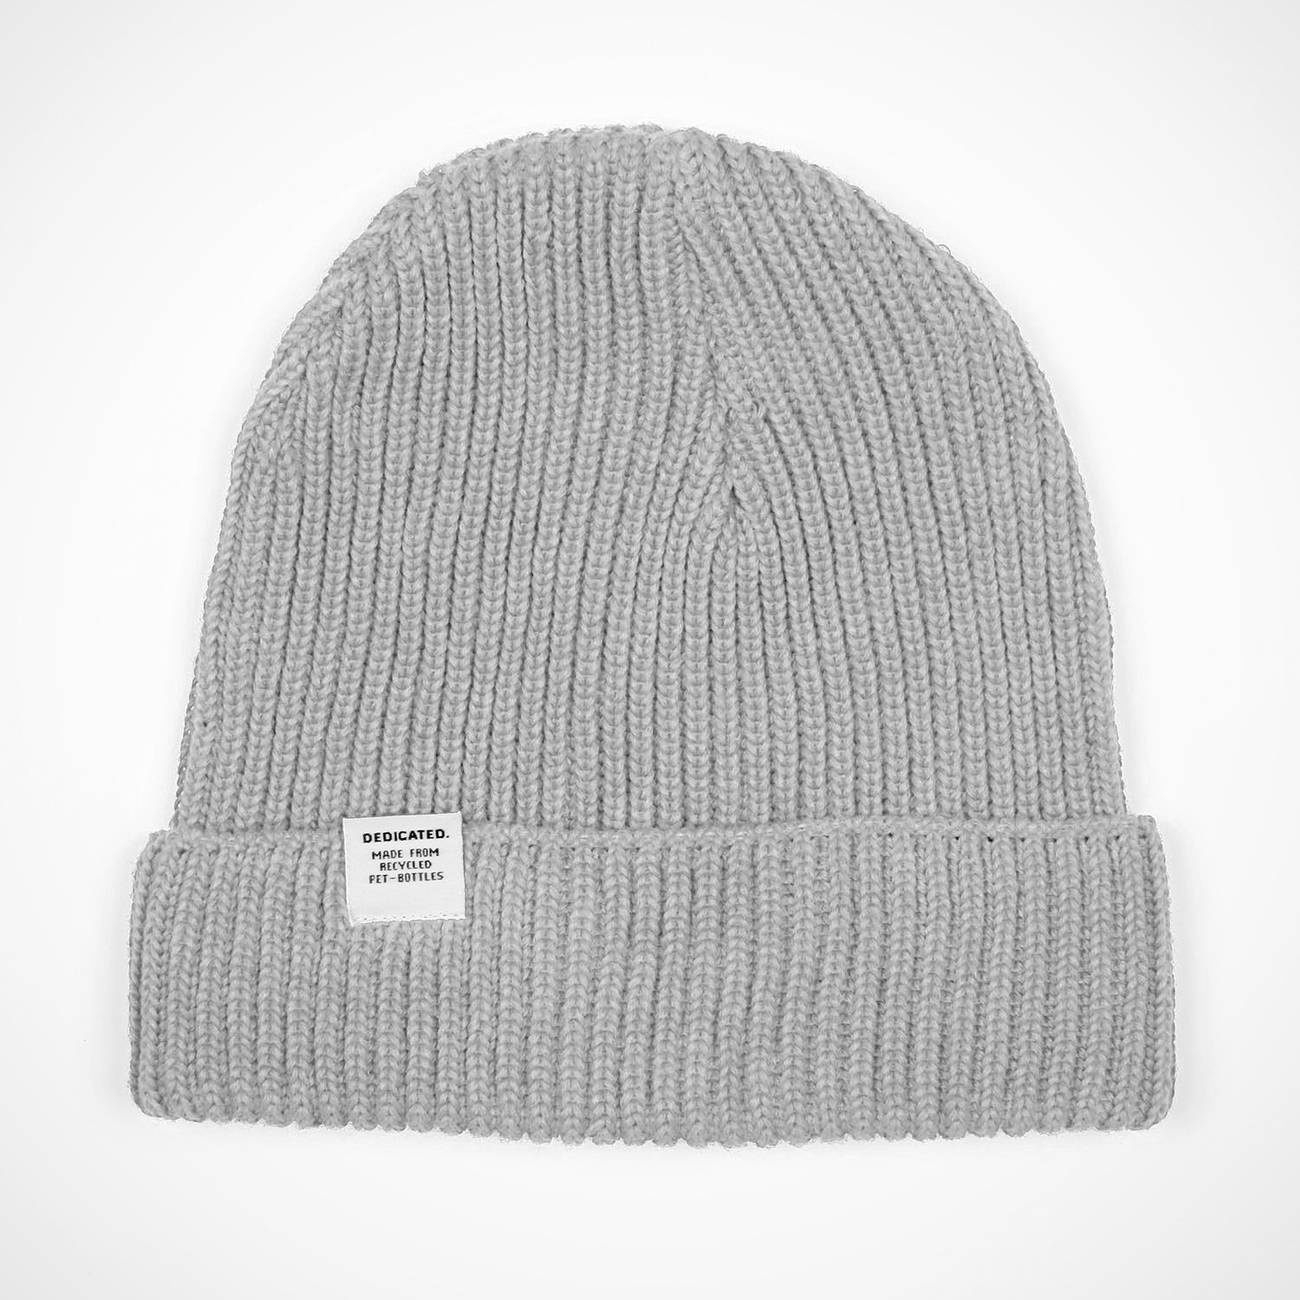 Lofoten Beanie Grey | Made from Recycled Bottles